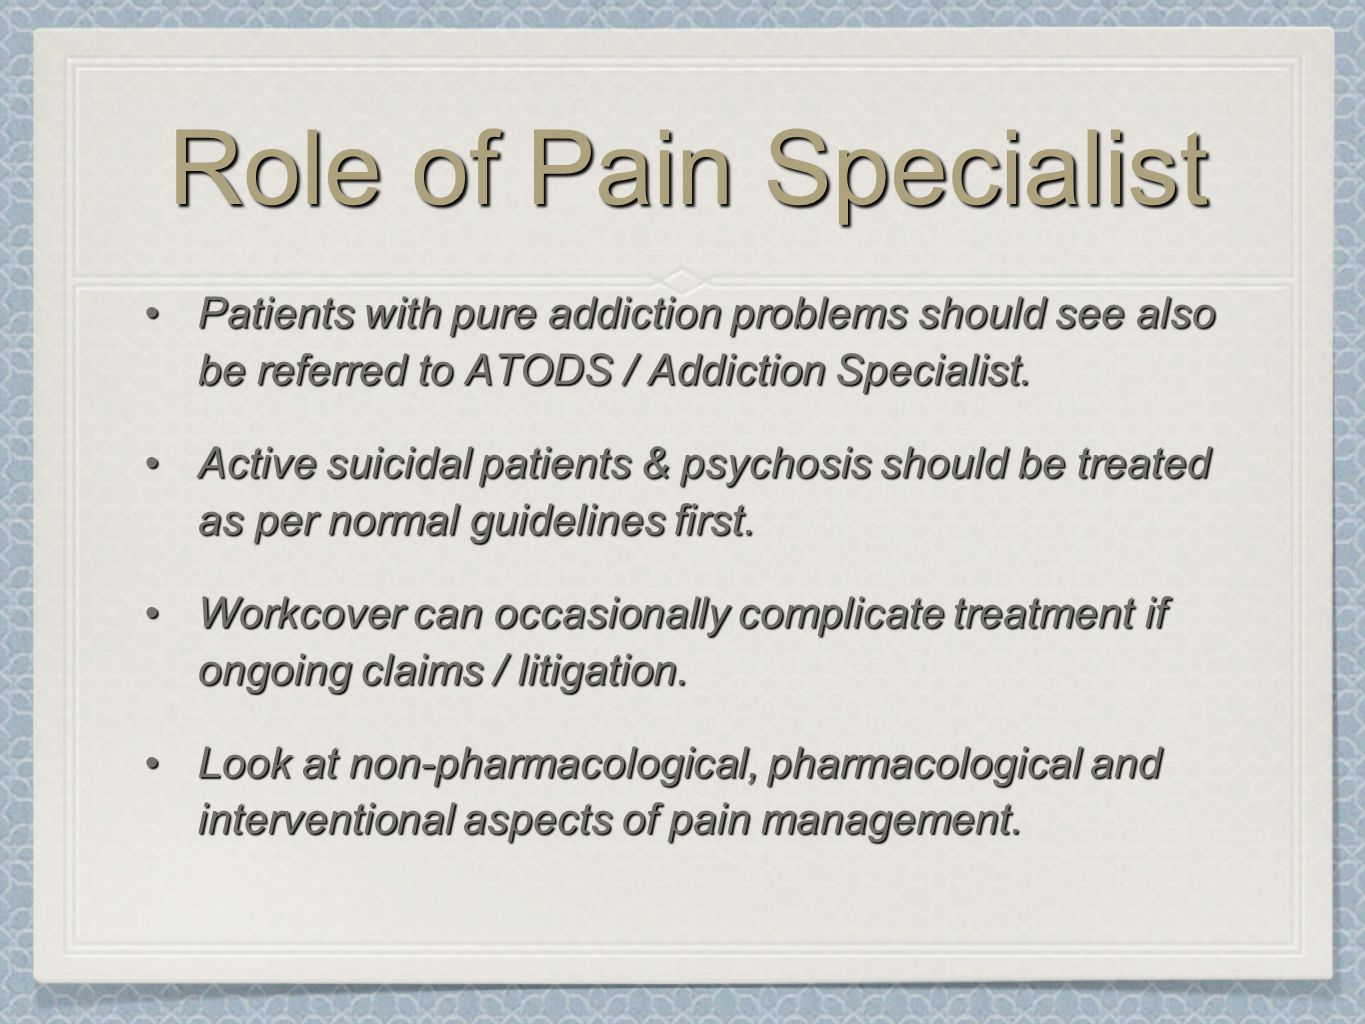 Role of Pain Specialist